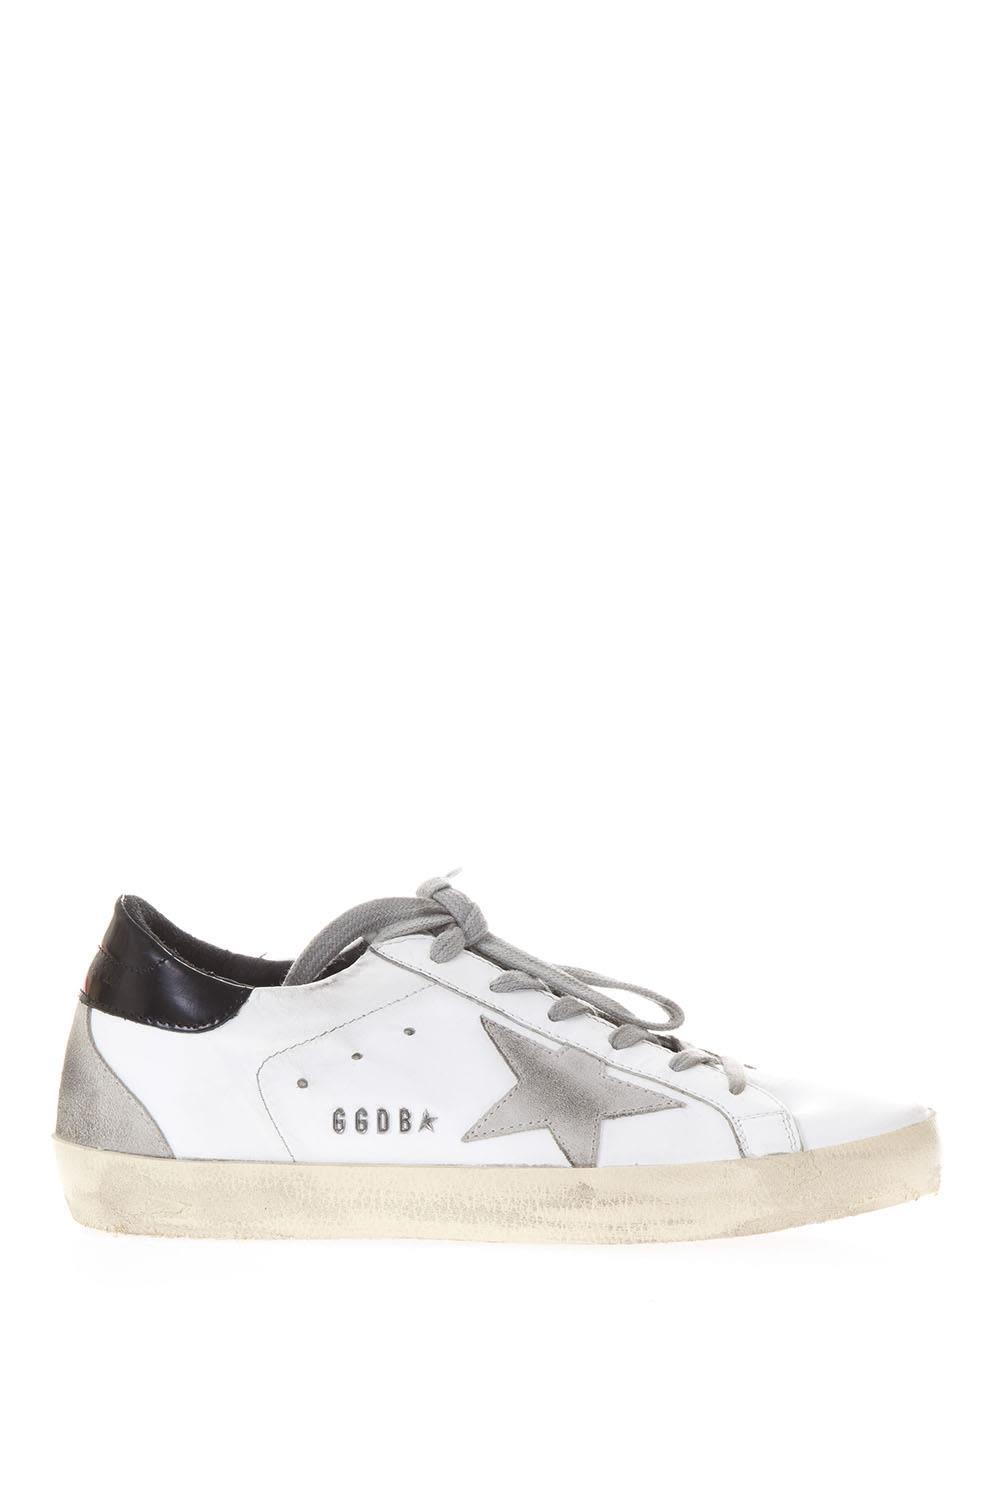 Golden Goose 20mm Super Star White & Black Leather Sneakers